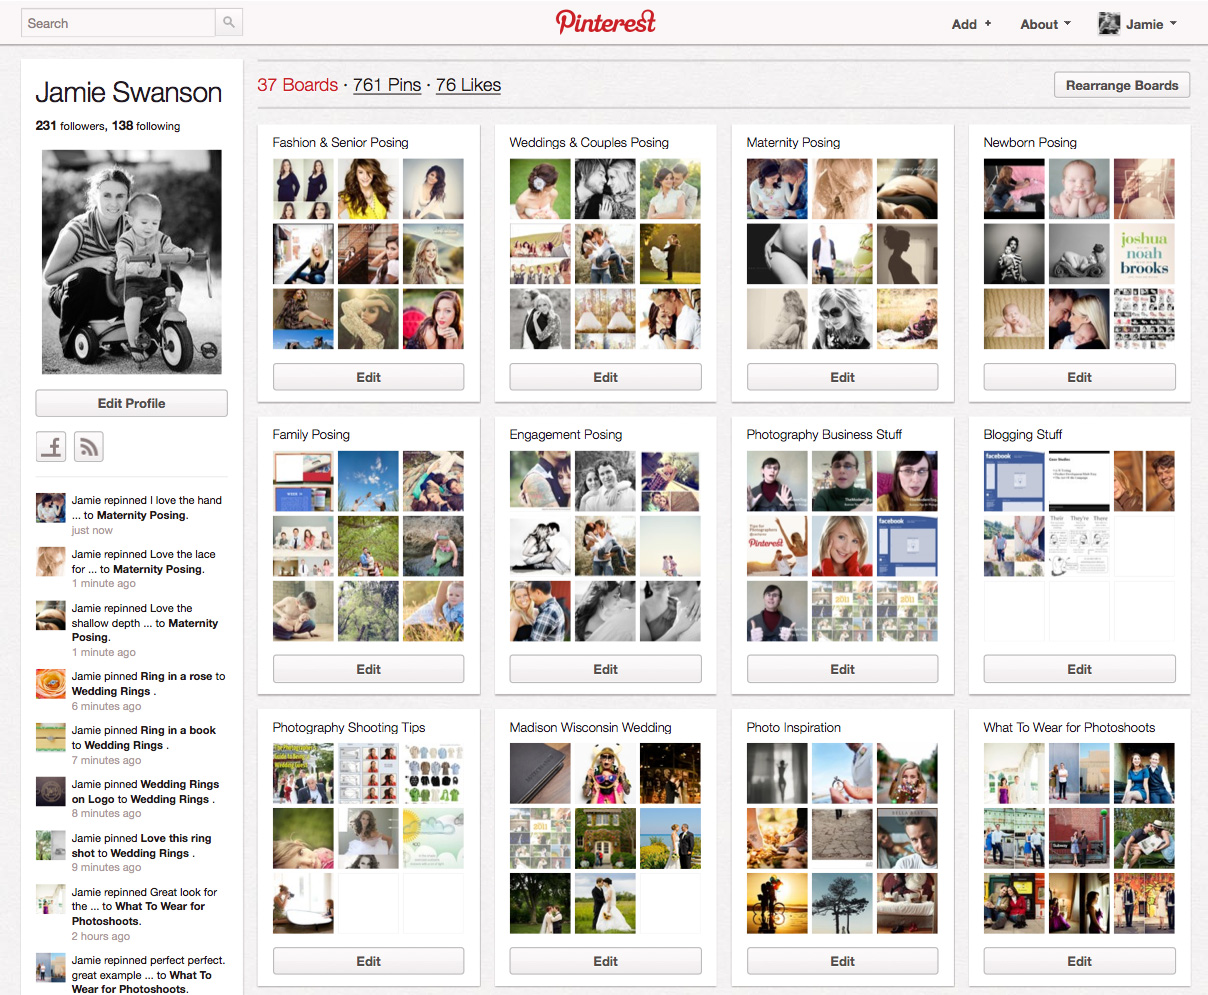 SOCIAL NETWORKING SERVICE ANTARA PATH INSTAGRAM DAN PINTEREST